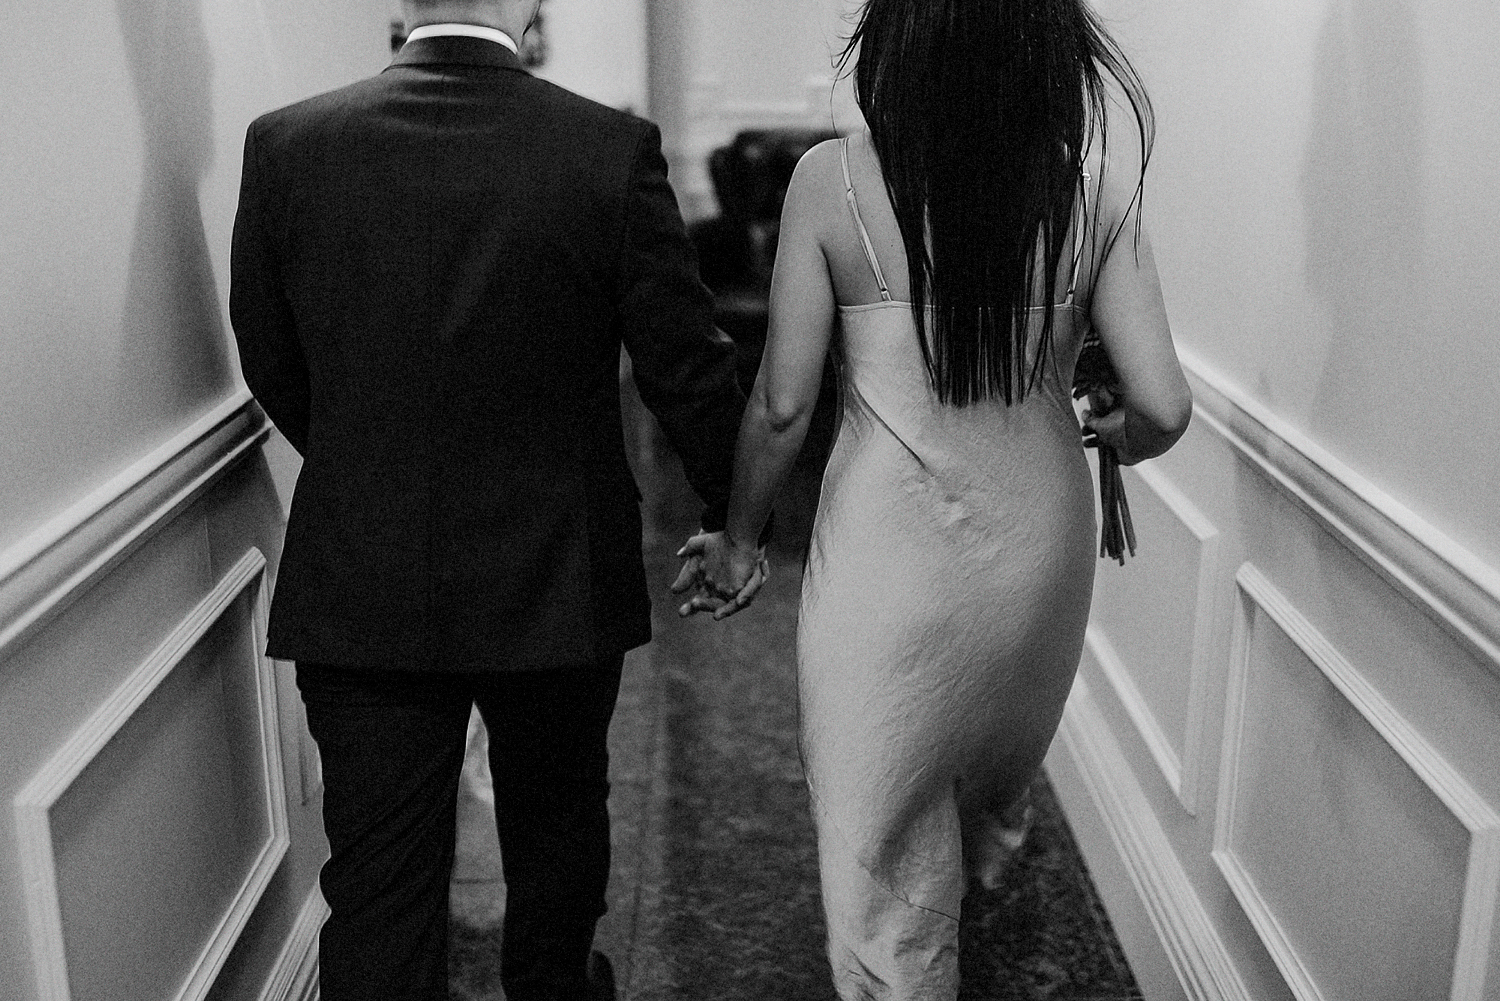 7-BEst-Wedding-Photographers-Toronto-One-King-West-Intimate-Wedding-Elopement-BW-Analog-Film-Portrait-candid-bank-vault-motion.jpg